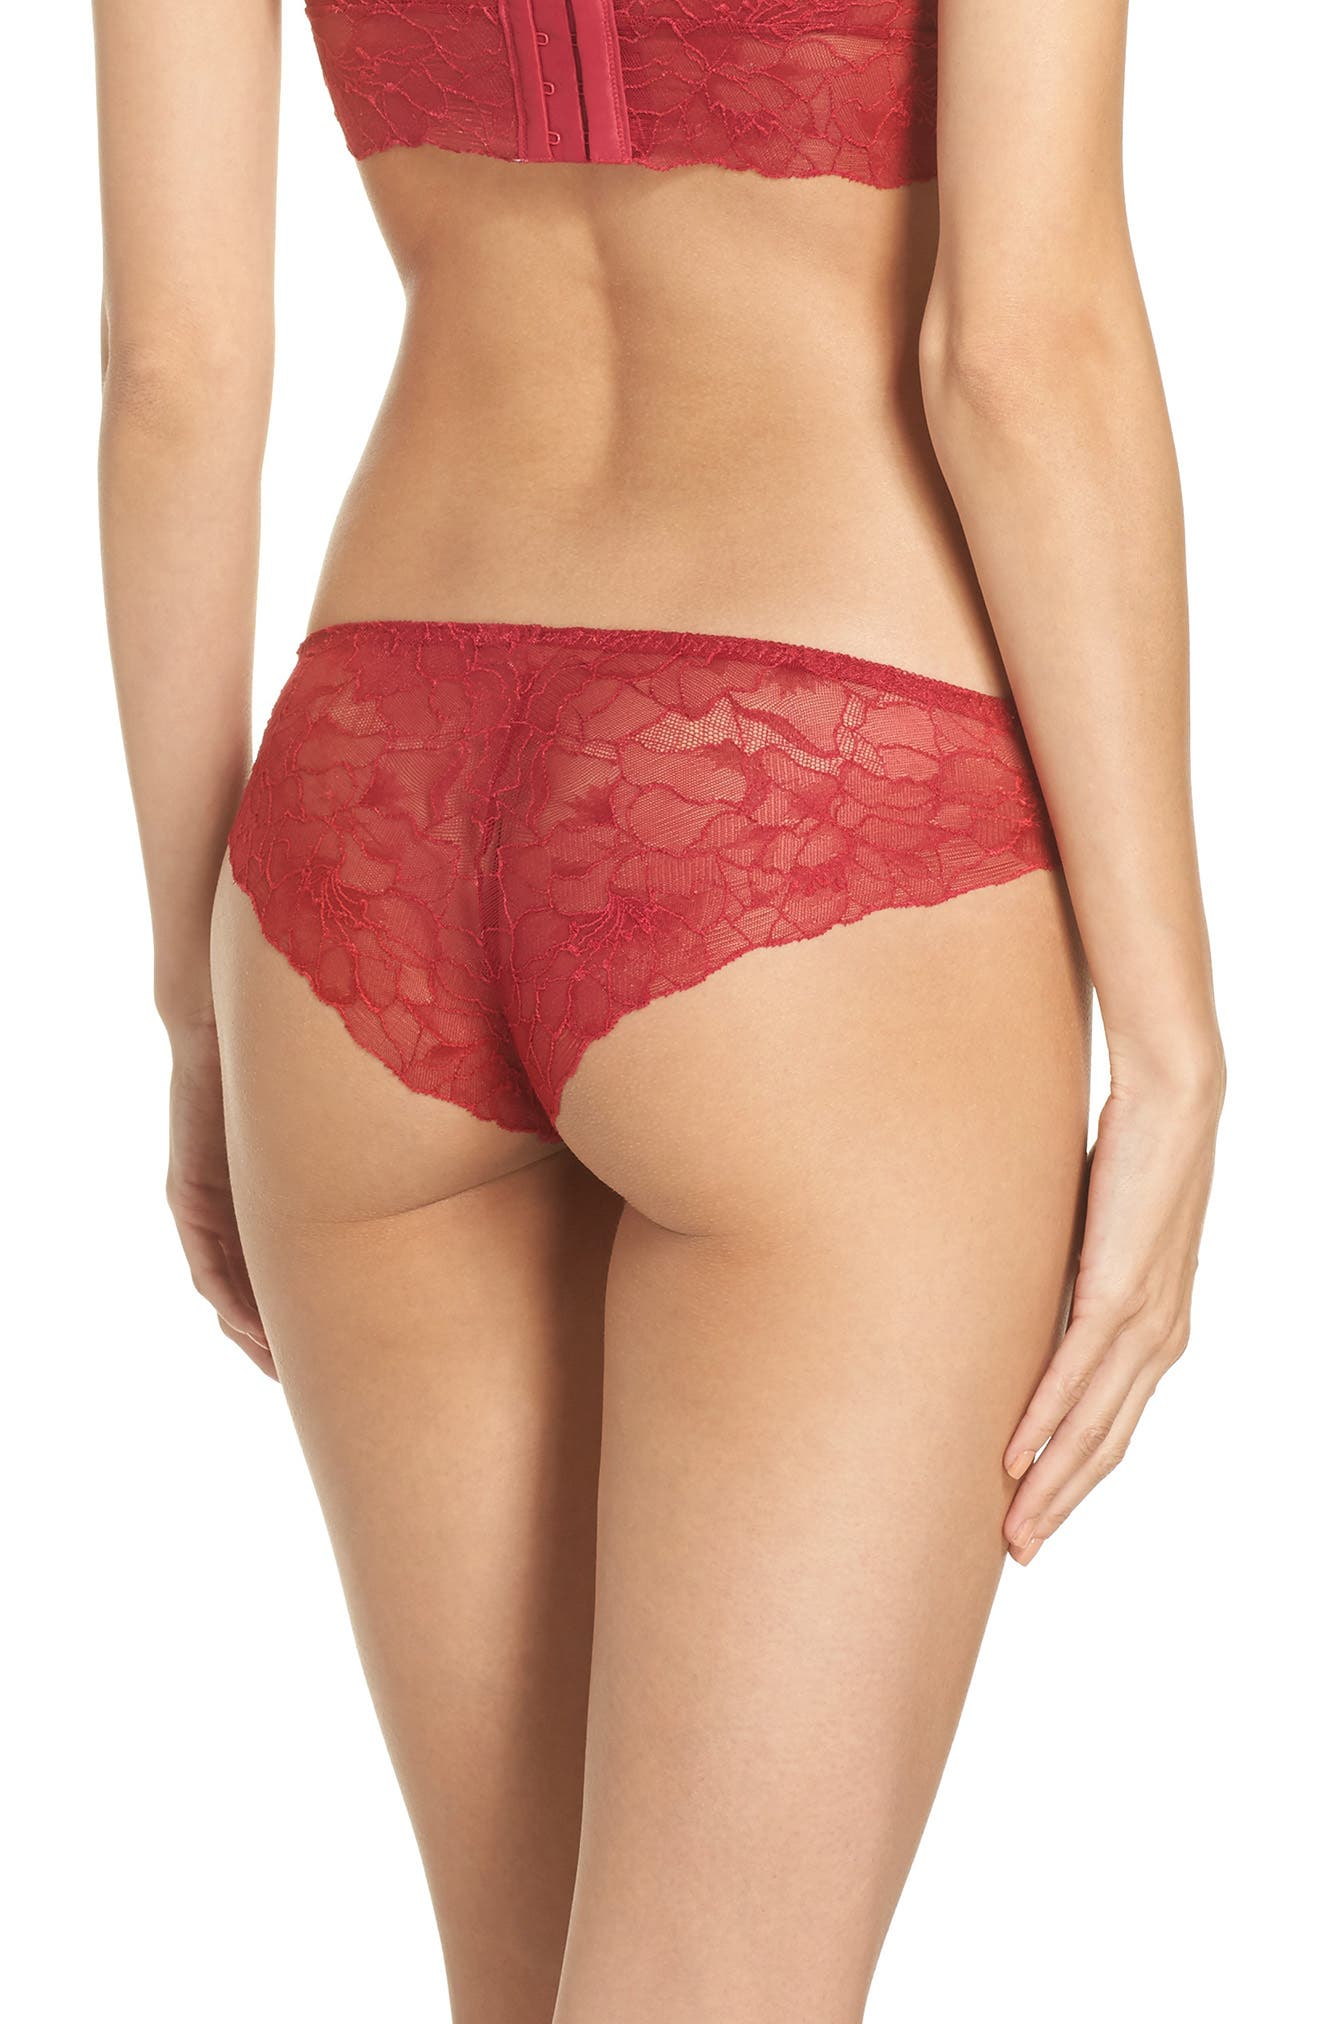 All Lace Glamour Panties,                             Alternate thumbnail 2, color,                             Scarlet